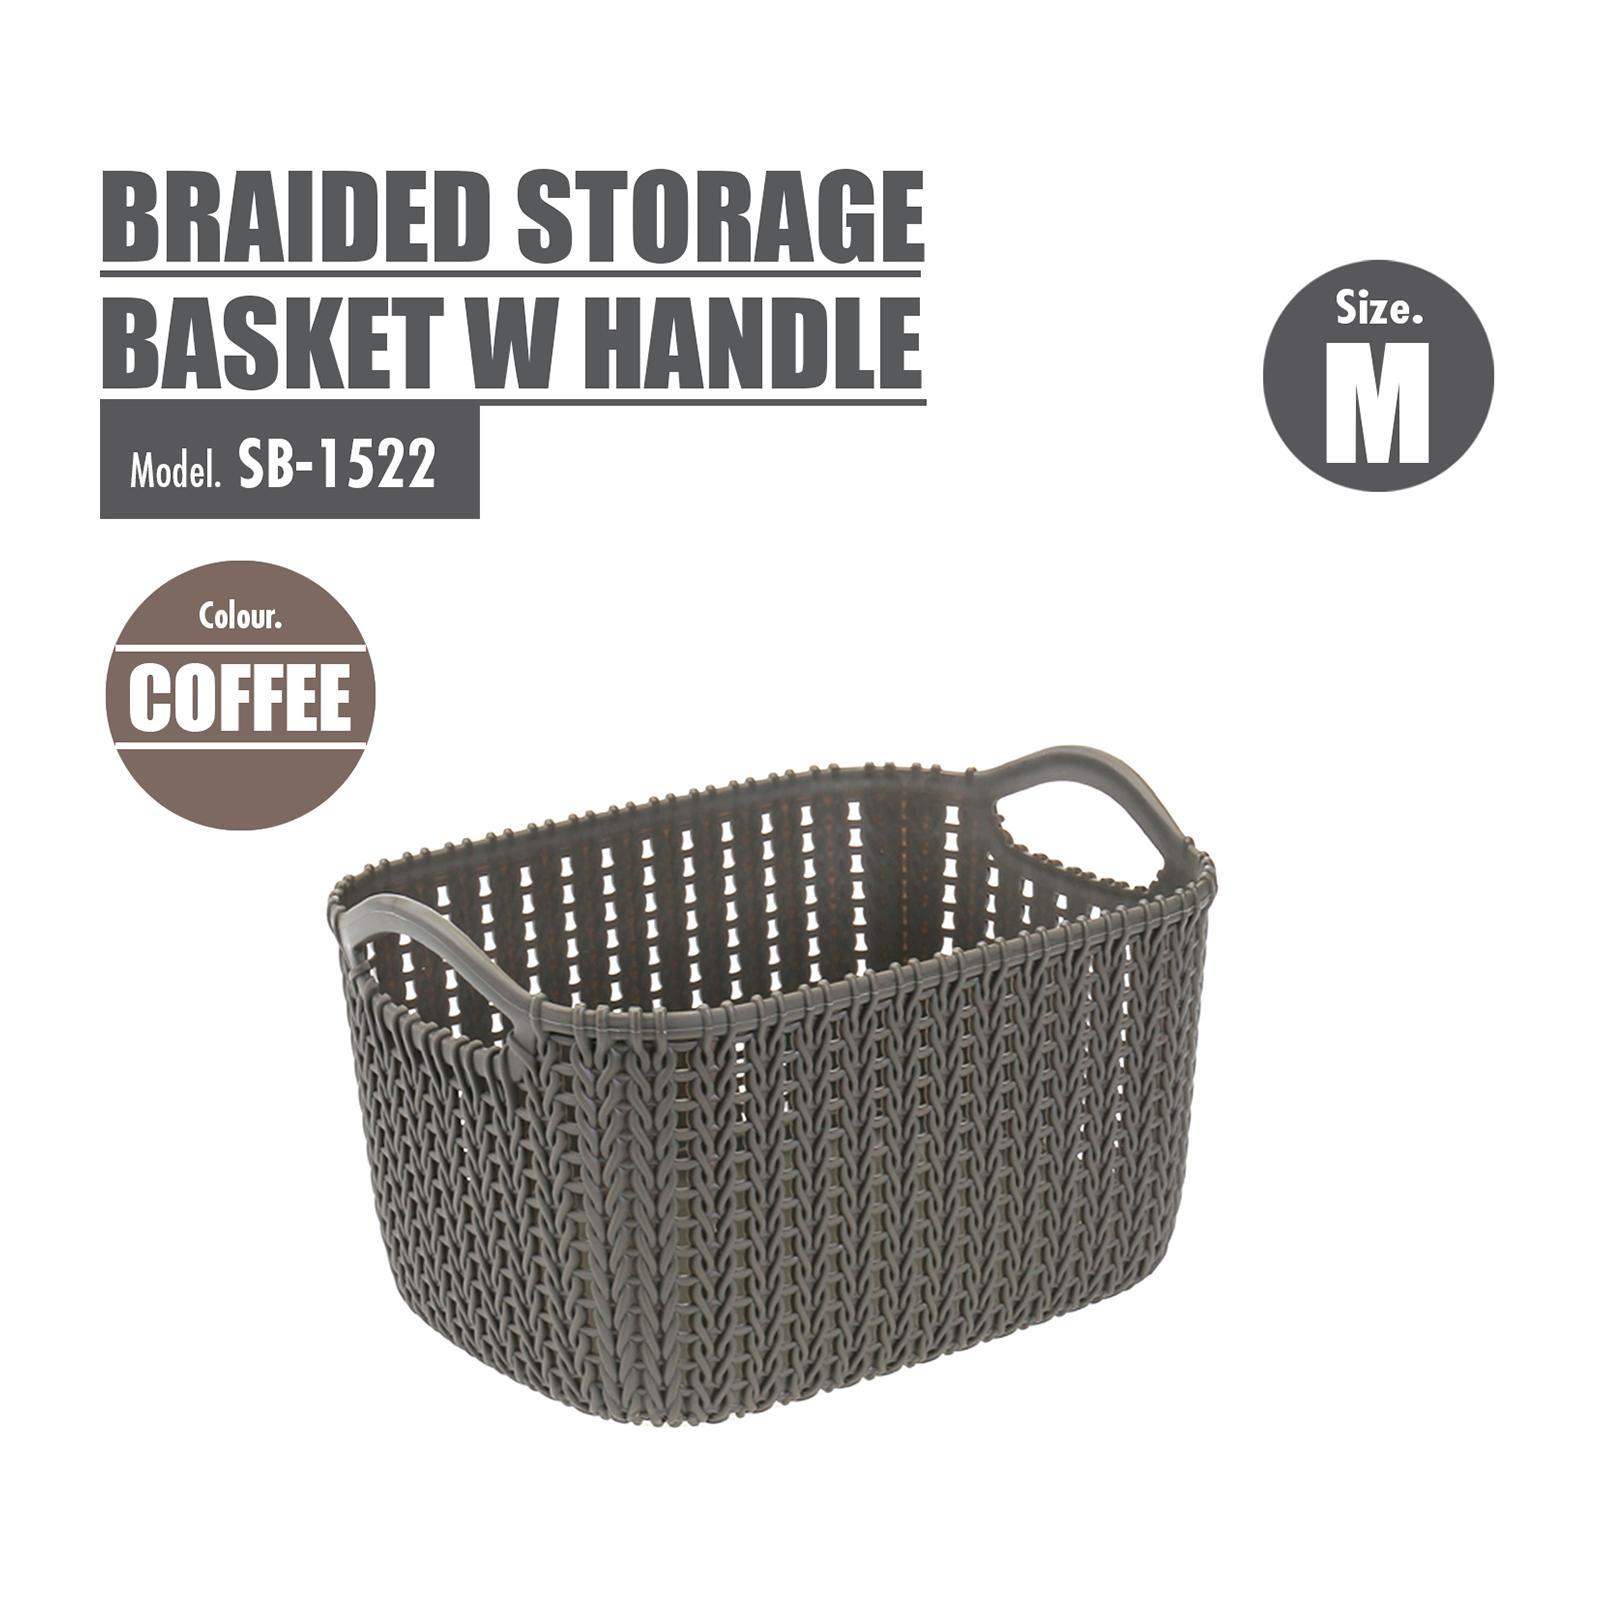 Houze Braided Storage Basket With Handle - Medium - Coffee - SB-1522-COFFEE